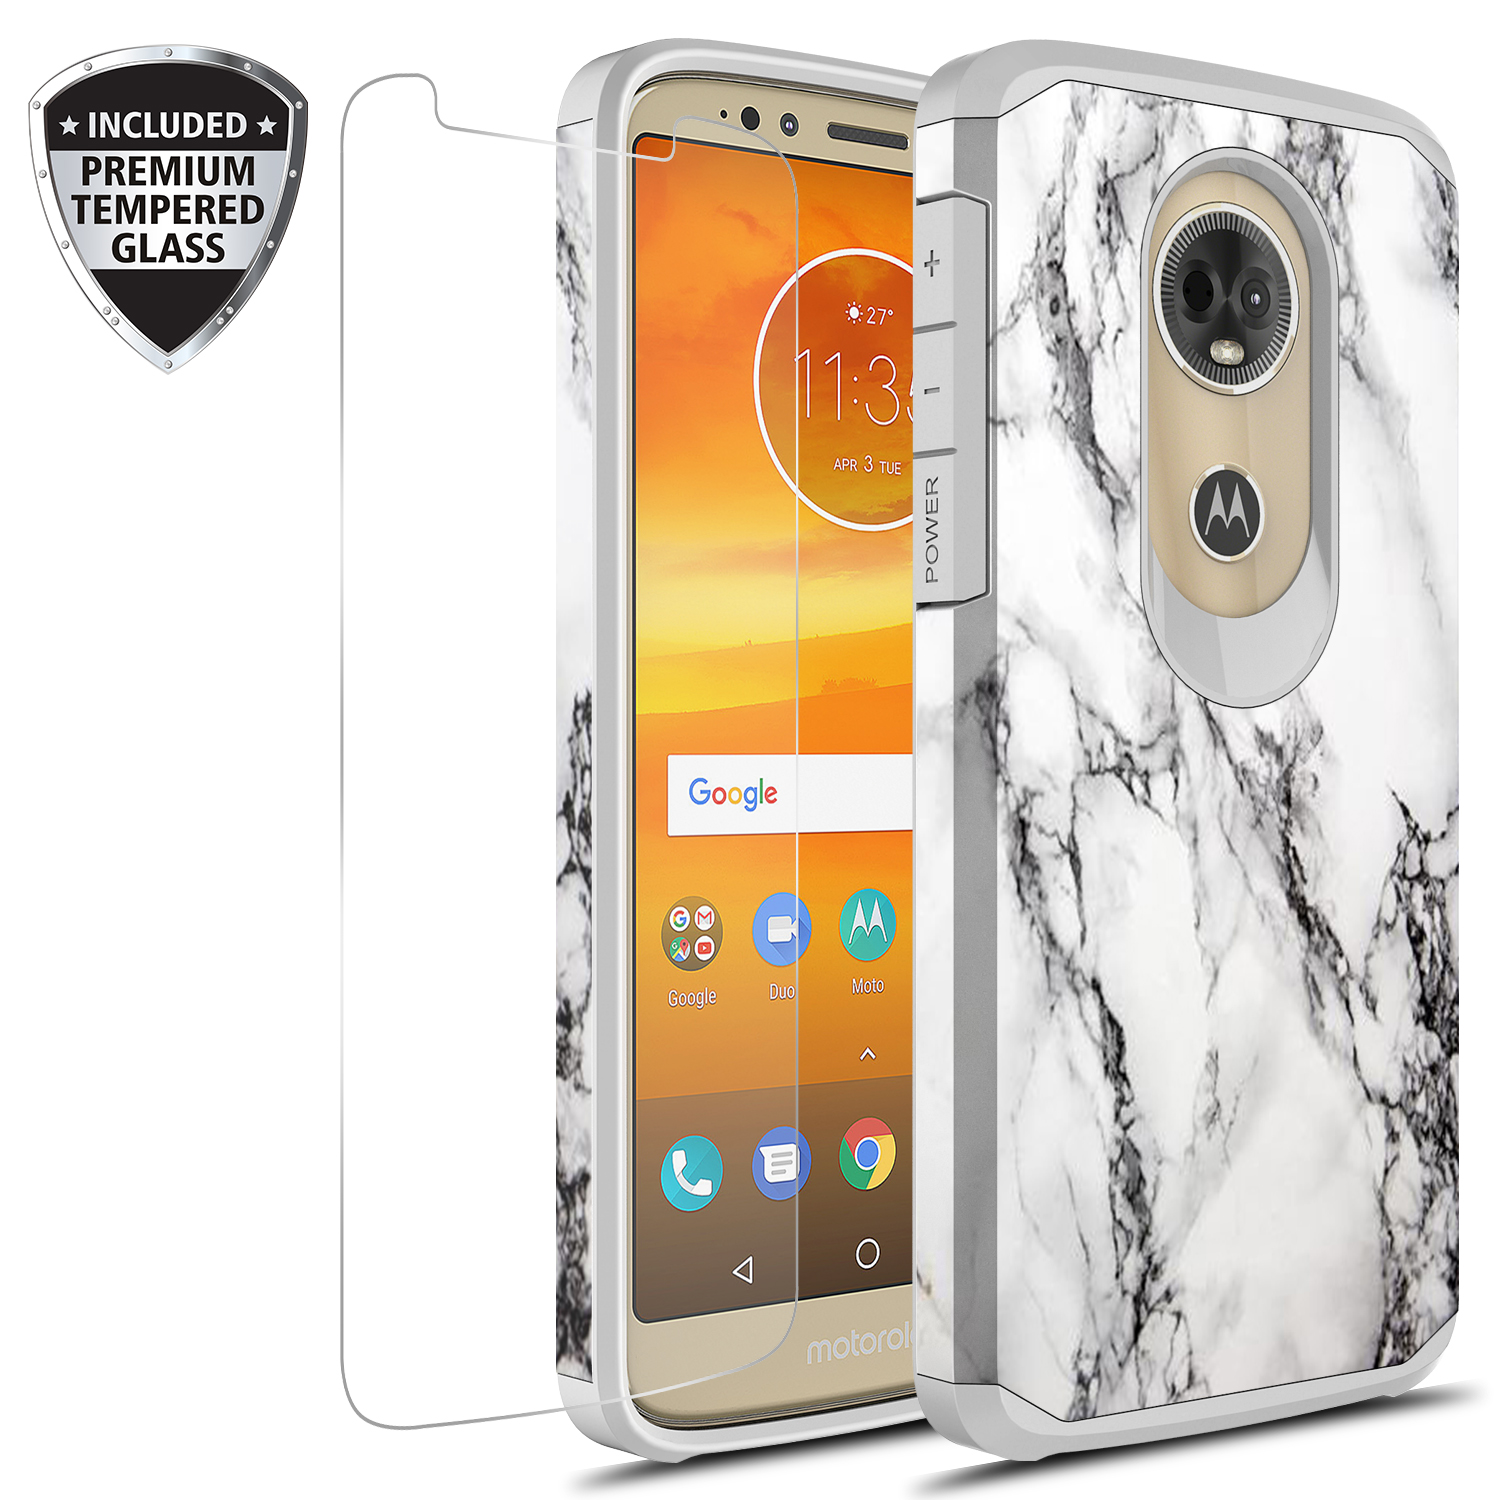 Best Moto G6 screen protectors - theandroidsoul.com